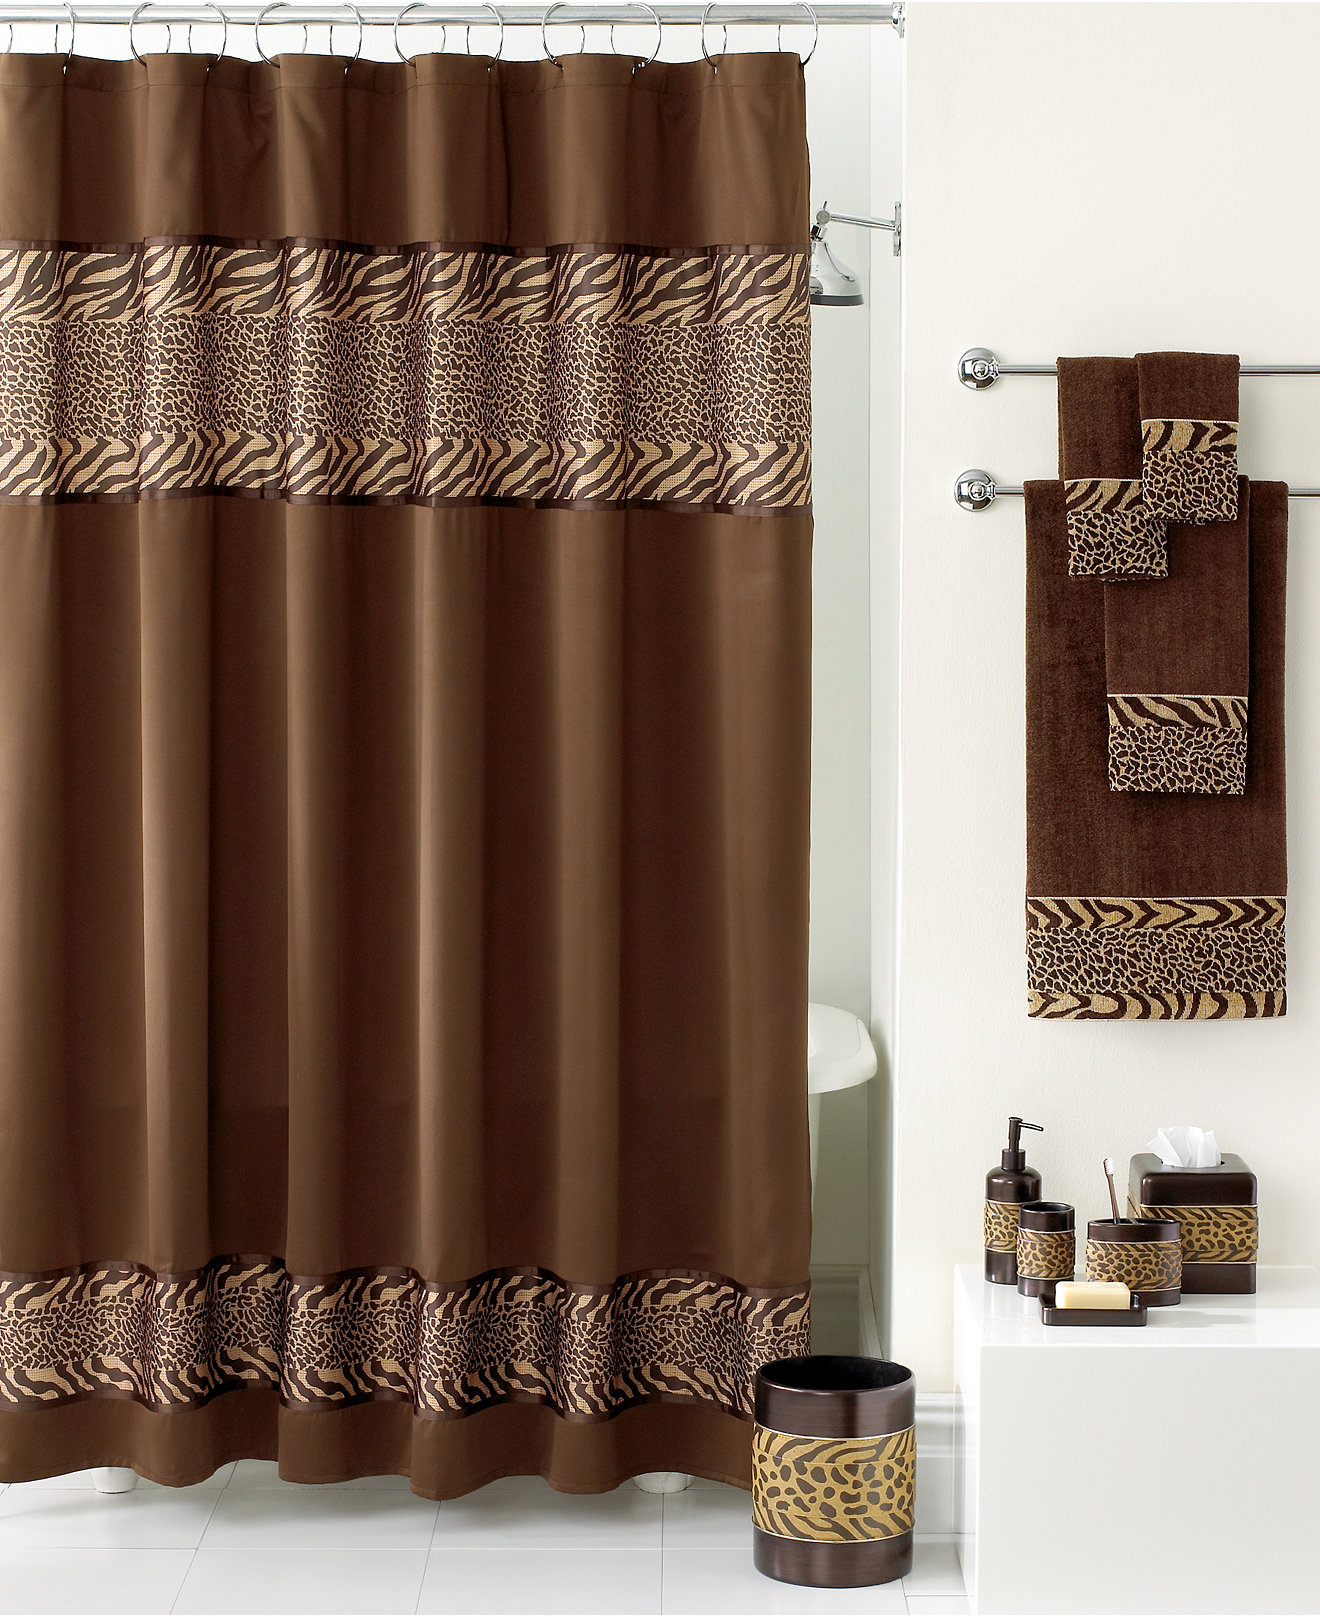 Cheetah Print Decor Cheetah Print Bathroom Set Bathroom